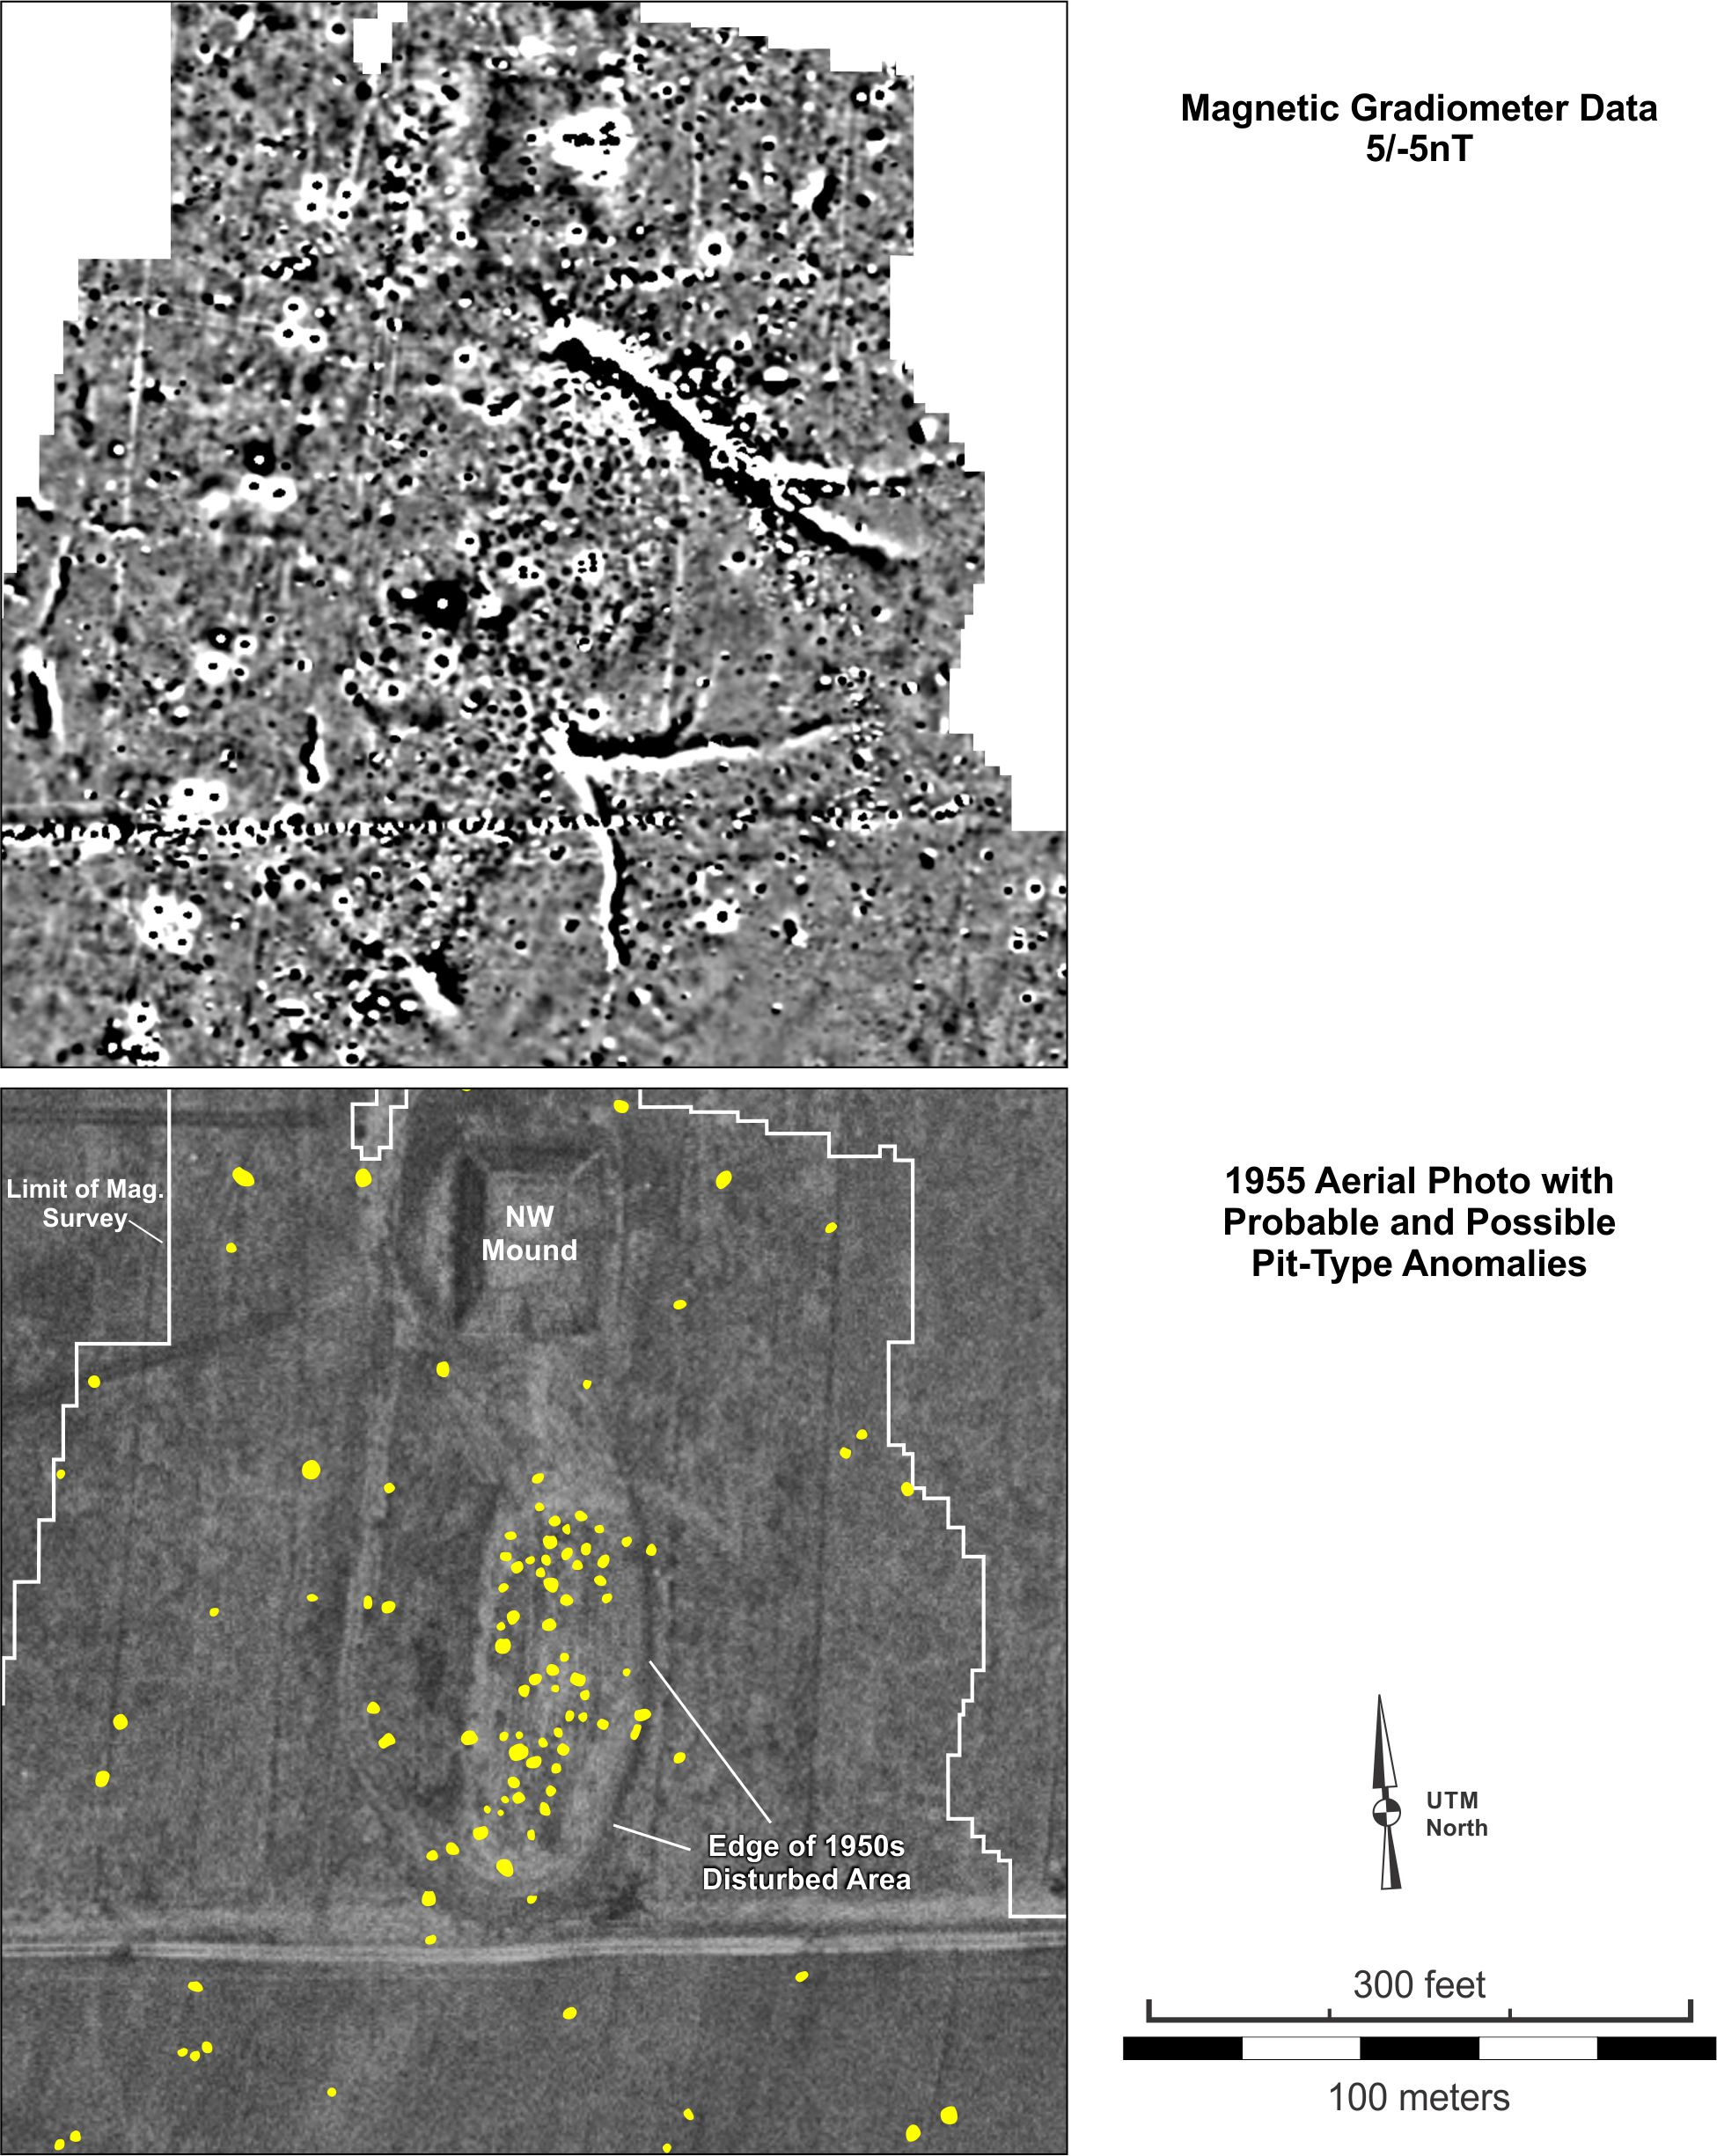 Figure 20. Detailed view of the probable and possible pit-type features in the a the (top) magnetic gradiometer data and (bottom) on a 1955 aerial photograph.